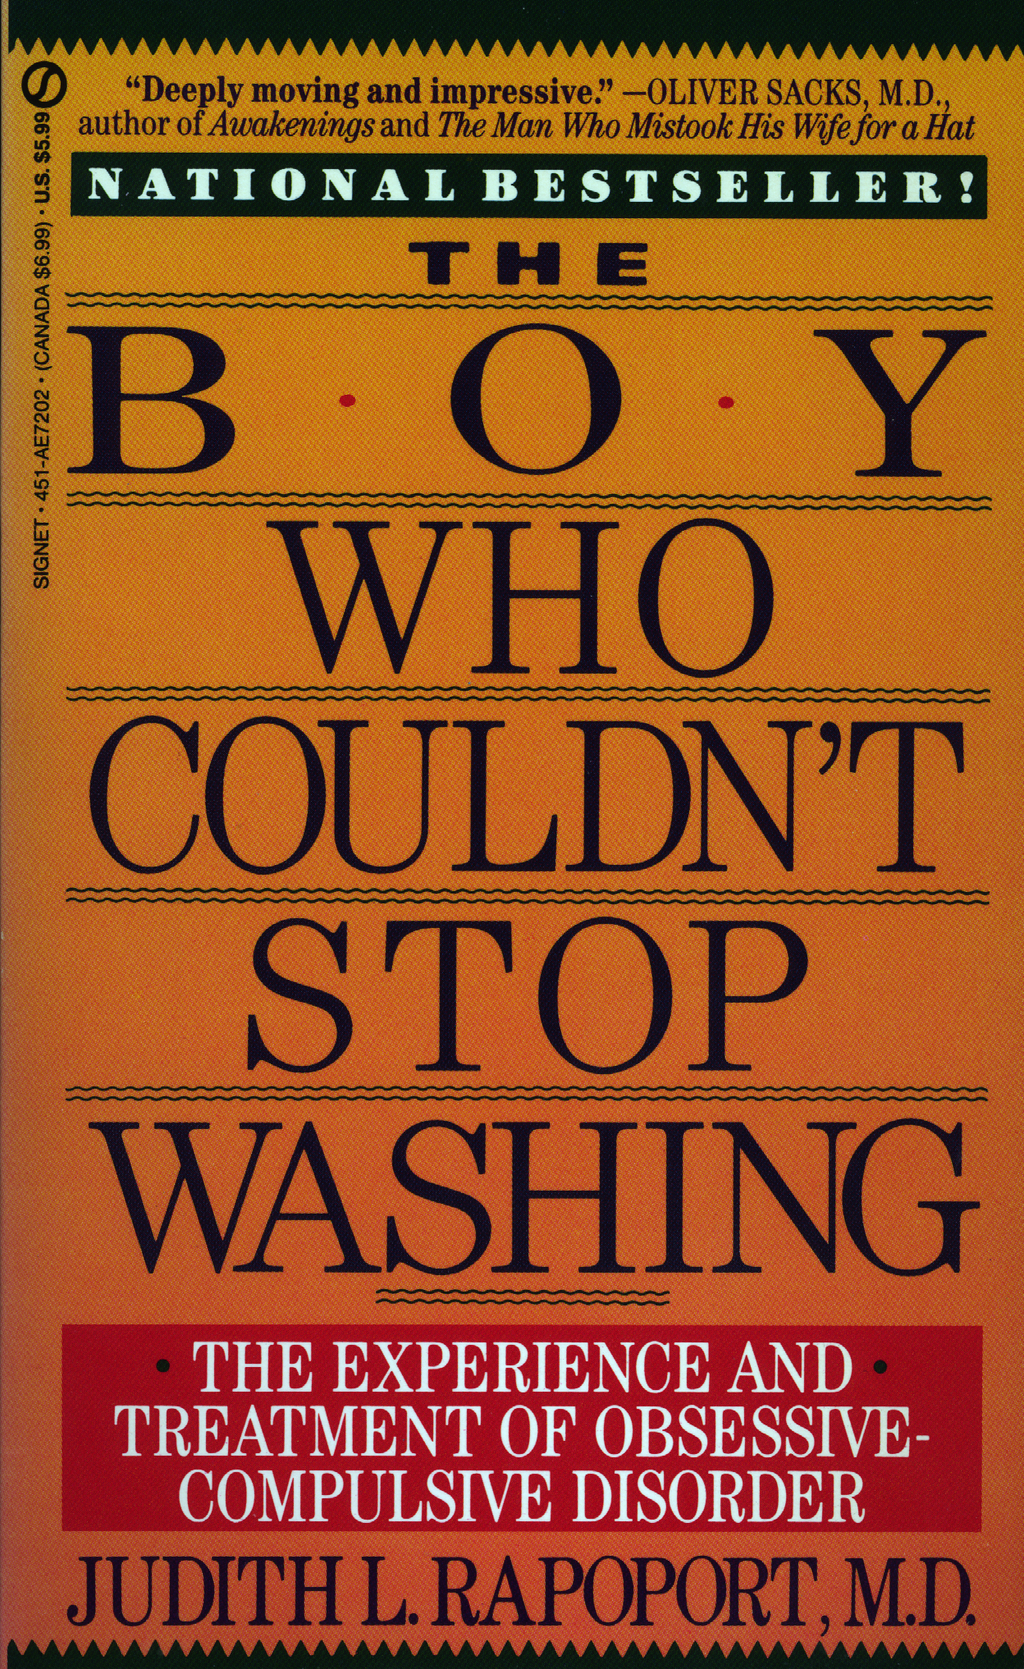 The Boy Who Couldn't Stop Washing By: Judith L. Rapoport